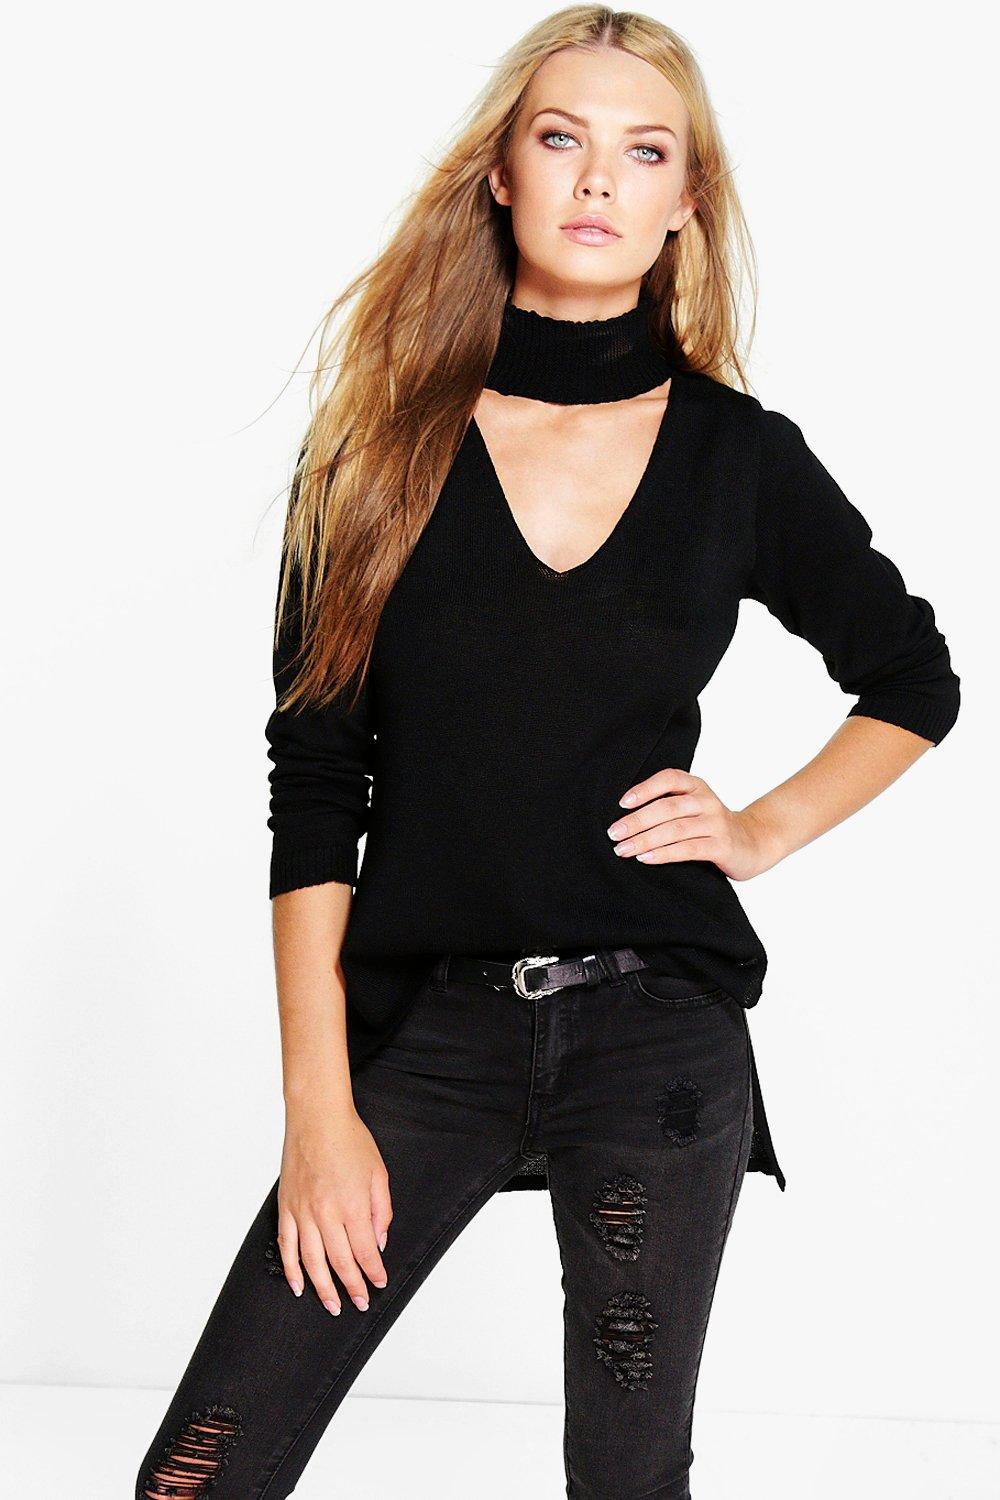 Details about boohoo womens lillie choker strap v neck jumper